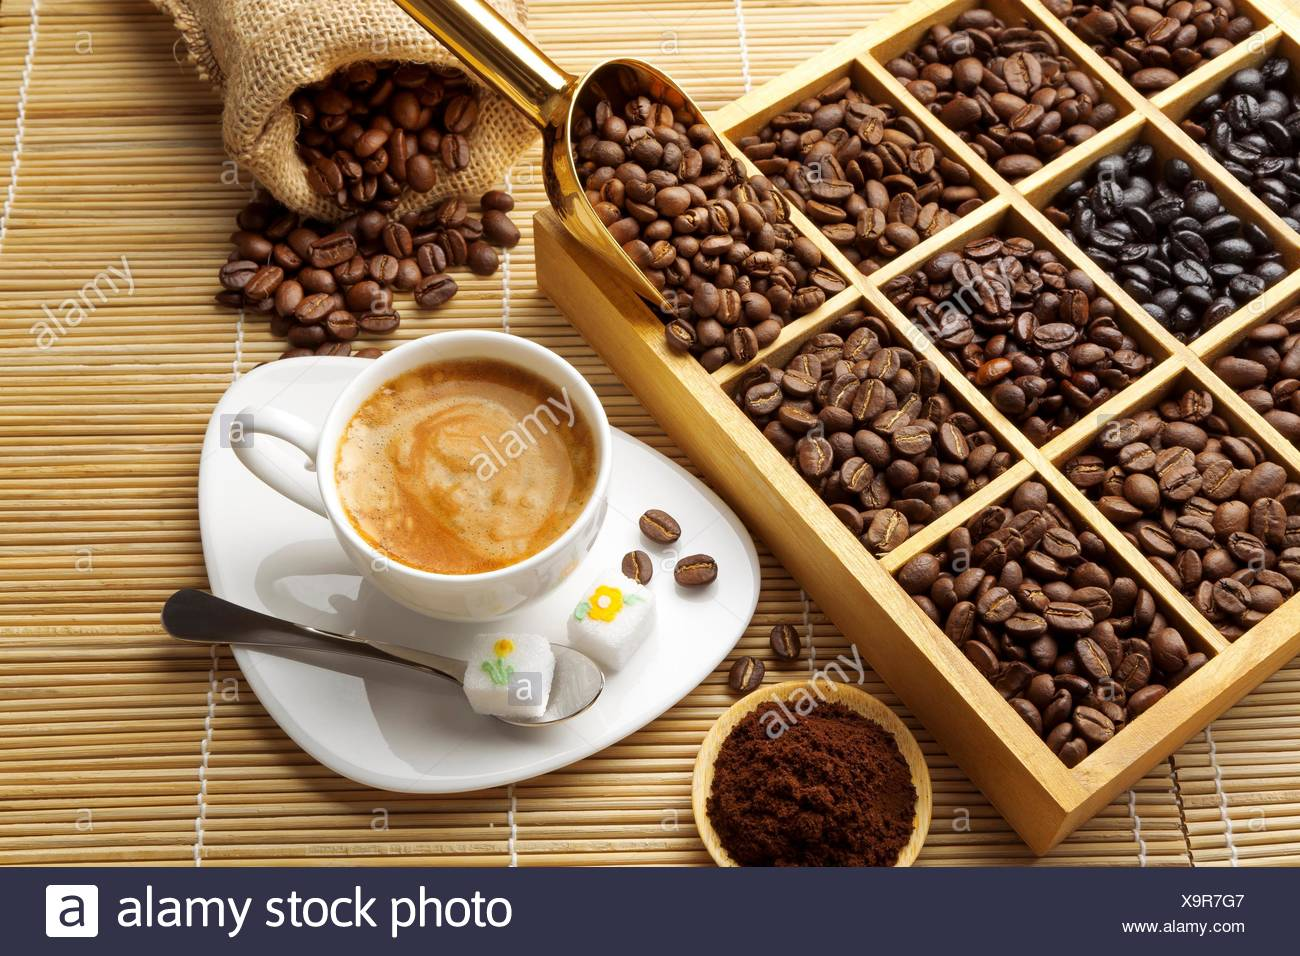 Costa Coffee Arabica Robusta Kenya Sugar Stock Photos And Kenya Sugar Stock Images Alamy